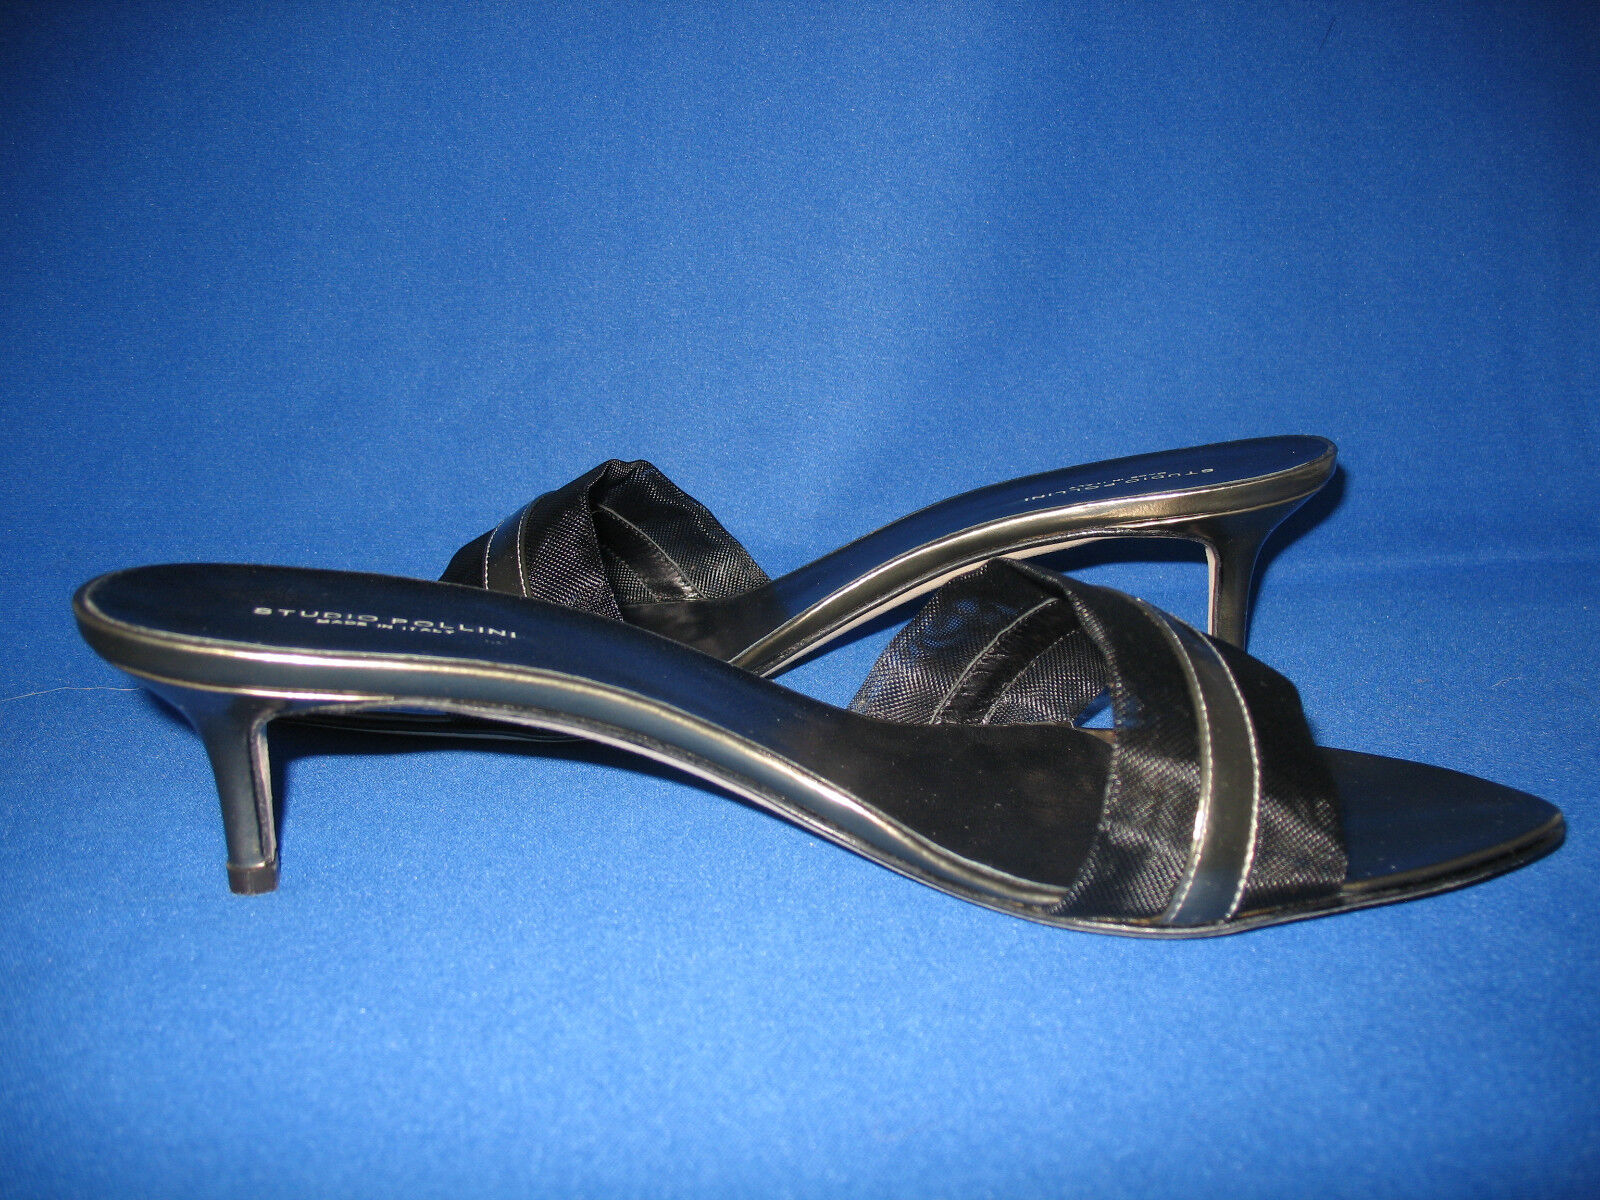 New  290 STUDIO POLLINI Pewter Leather shoes Sandals 9